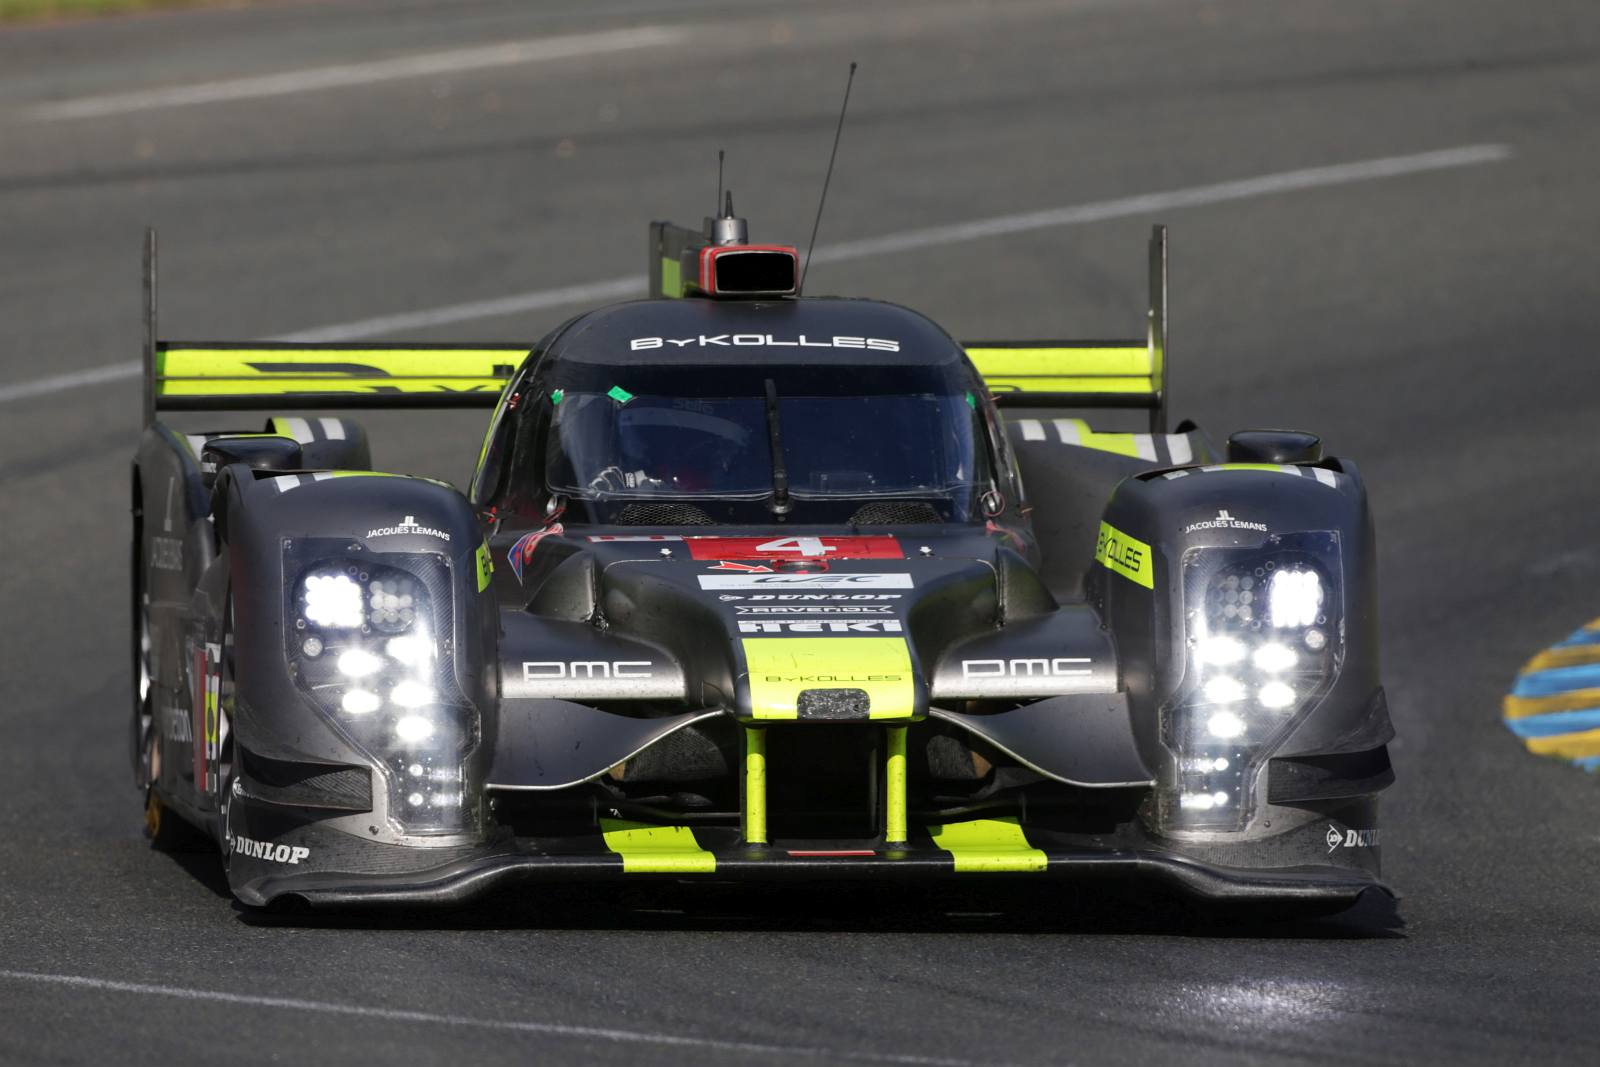 byKOLLES-racing-WEC-le-mans-2016-28